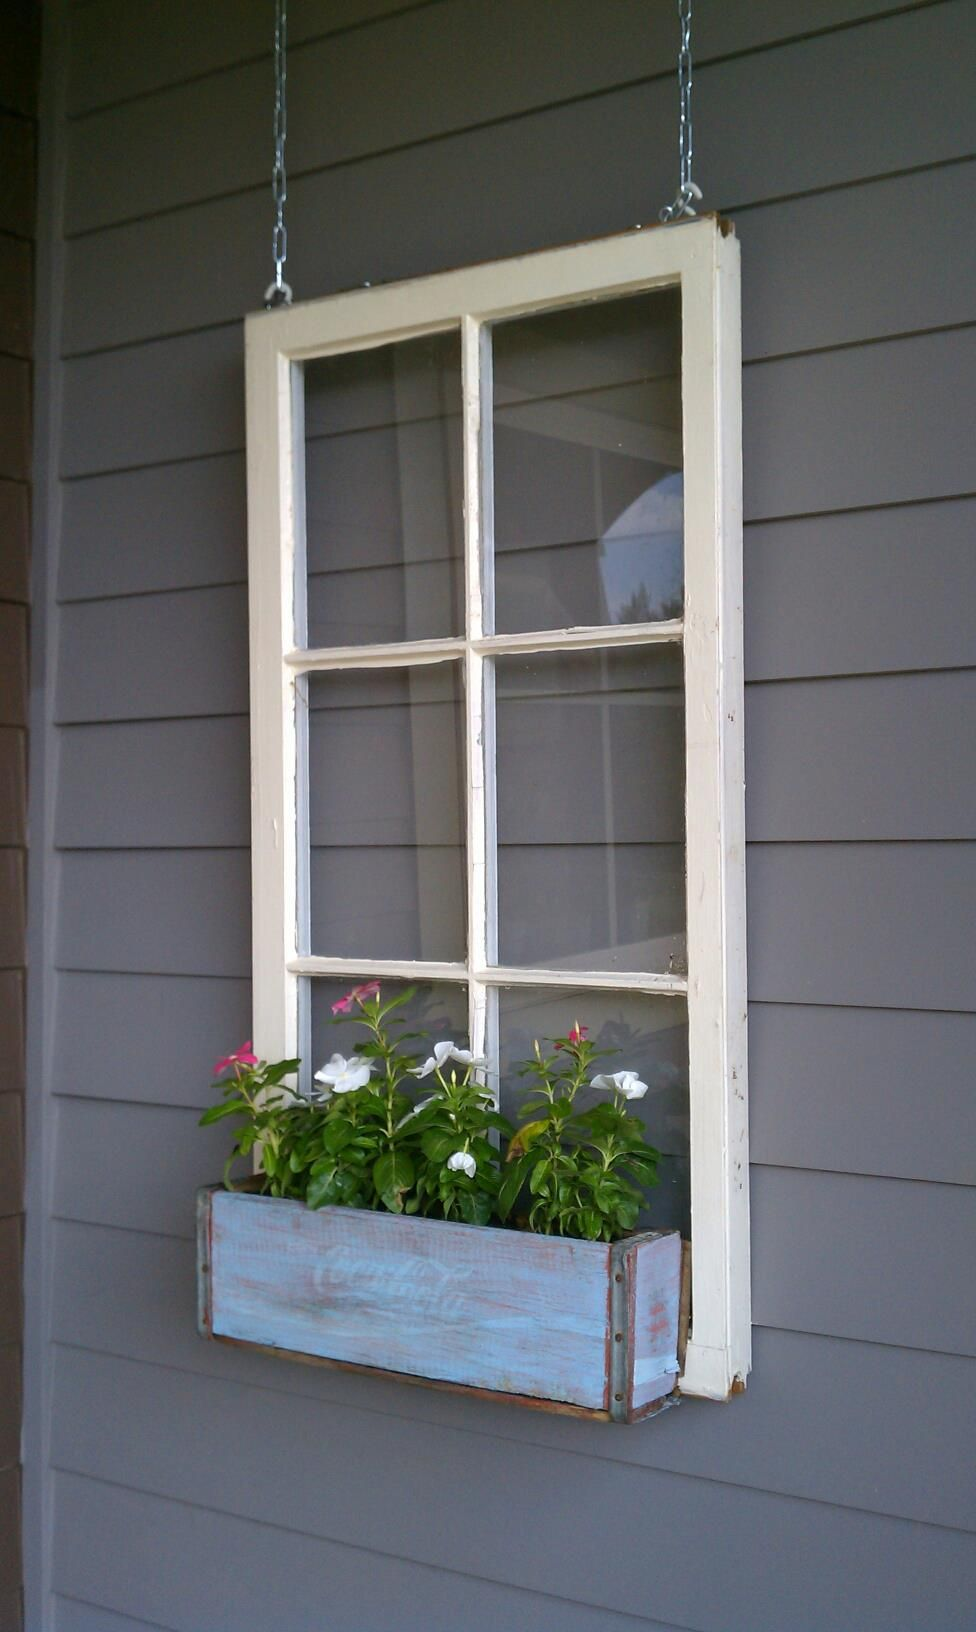 Window privacy ideas   creative outdoor wall decor ideas in   rustic old windows